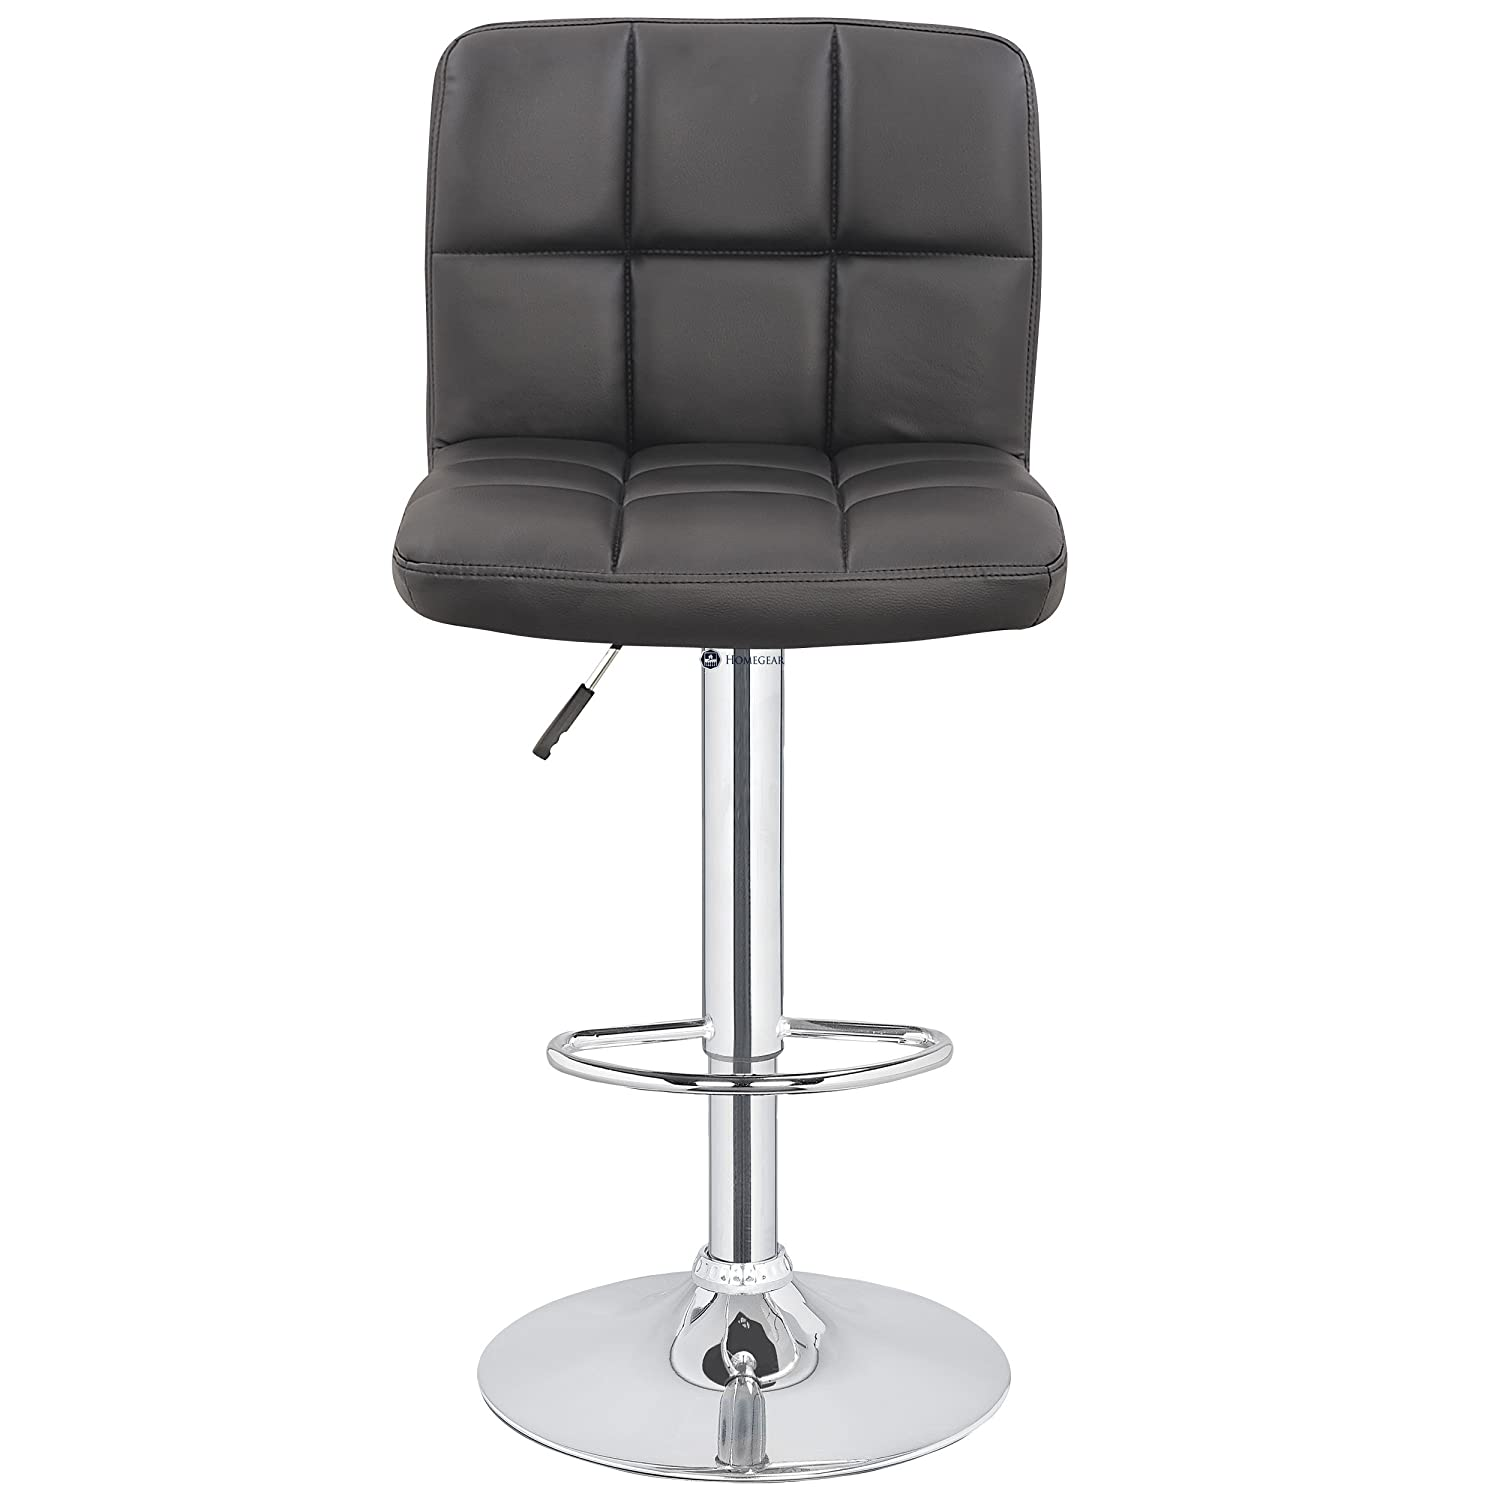 Homegear M2 Contemporary Adjustable Faux Leather Bar Stool x2